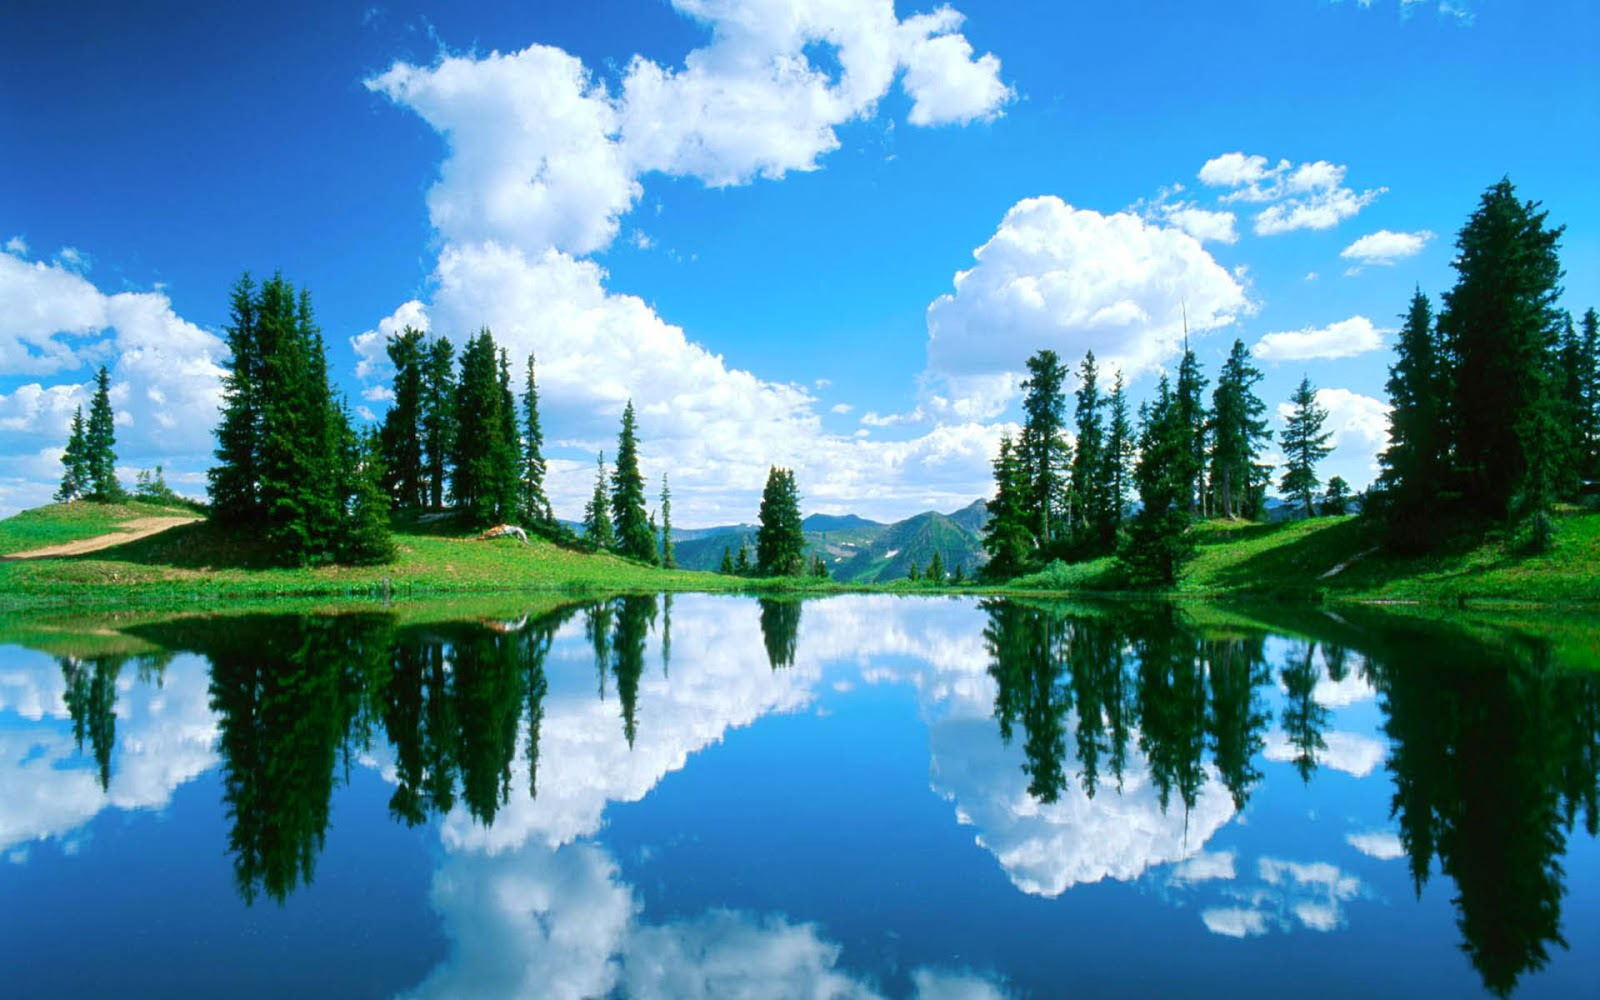 Nice Nature Desktop Backgrounds Hd Images Picture Wallpapers. Do I Need A Permit To Finish My Basement. Drypro Basement Systems. Basement Wall Leaking Water. One Story Home Plans With Basement. Walkout Basement Plans Photos. Larry Janesky Basement Systems. Ct Basement Systems Radon. Basement Couches